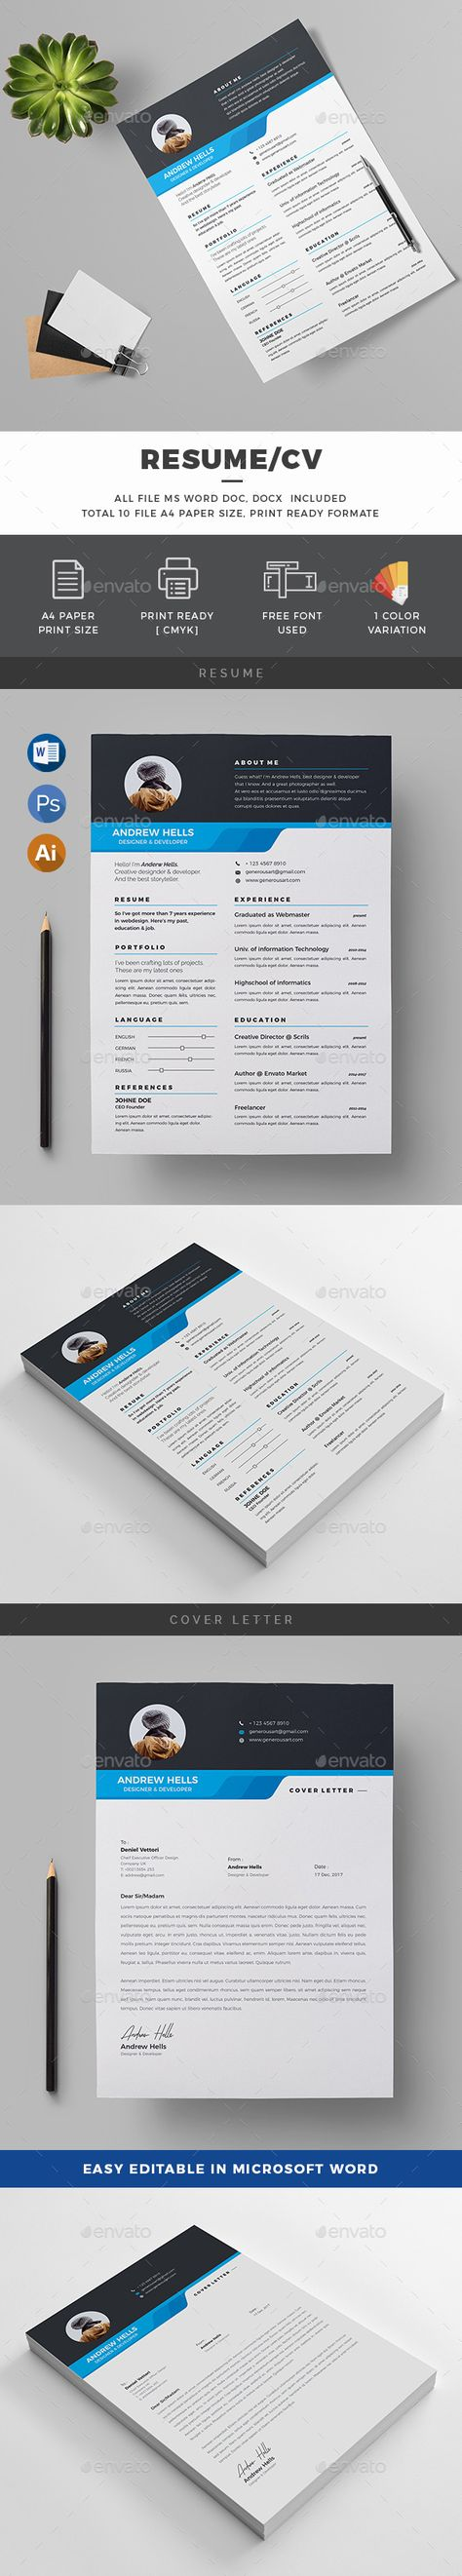 Resume (With images) Resume design template, Simple